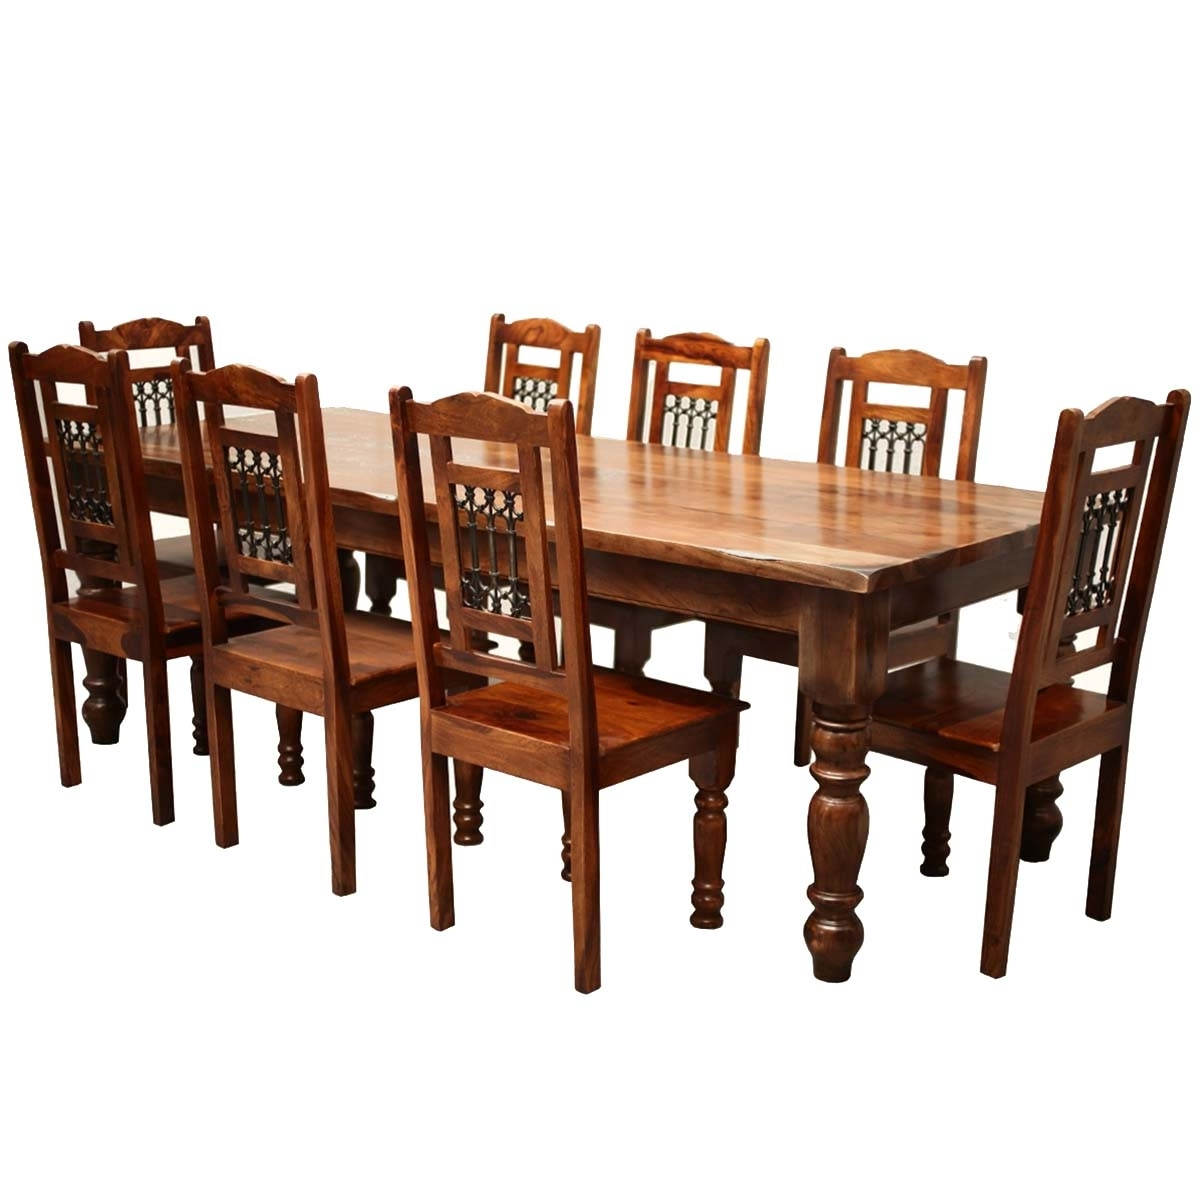 Dining Tables 8 Chairs Set in Most Popular Rustic Furniture Solid Wood Large Dining Table & 8 Chair Set